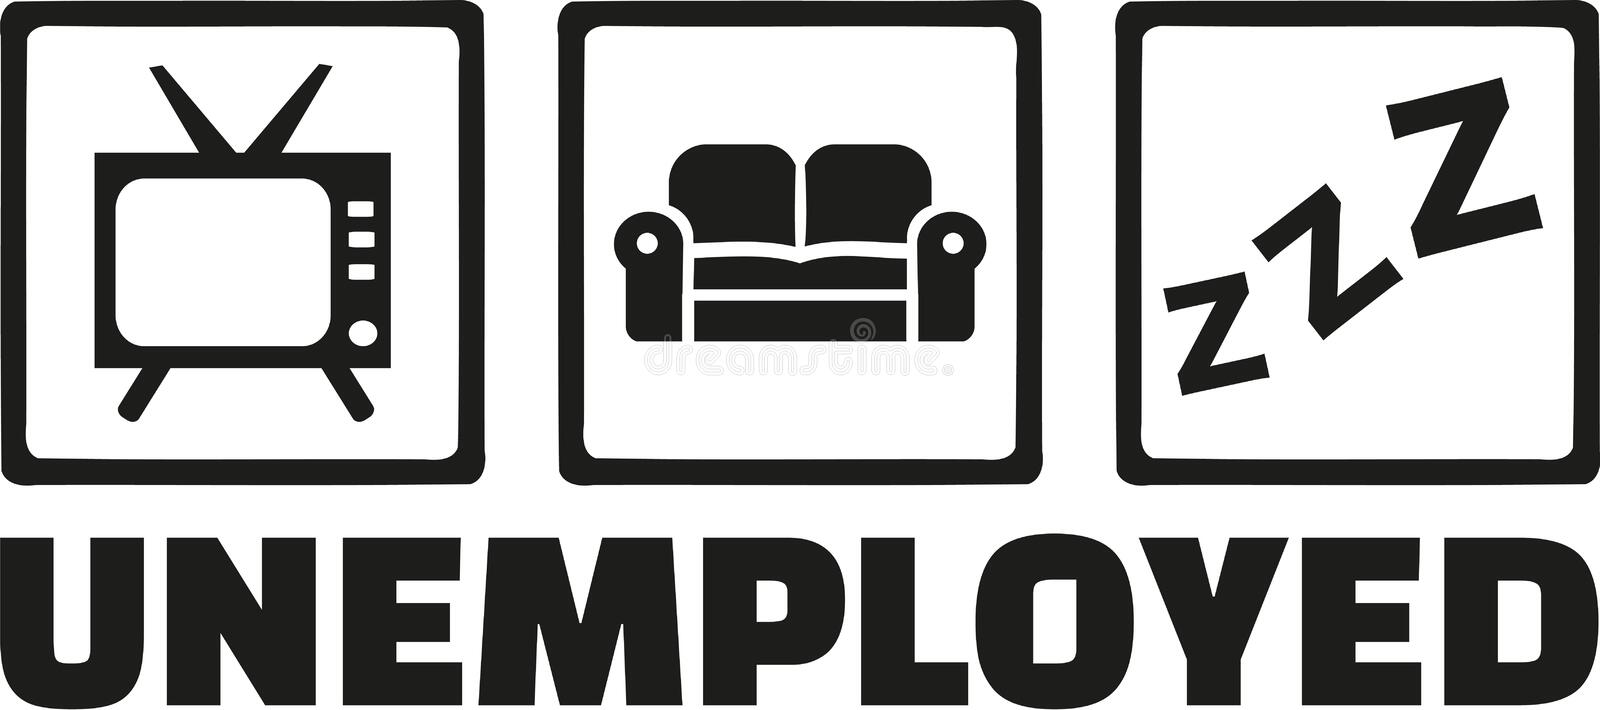 Unemployed icons - tv, sofa, sleep stock illustration